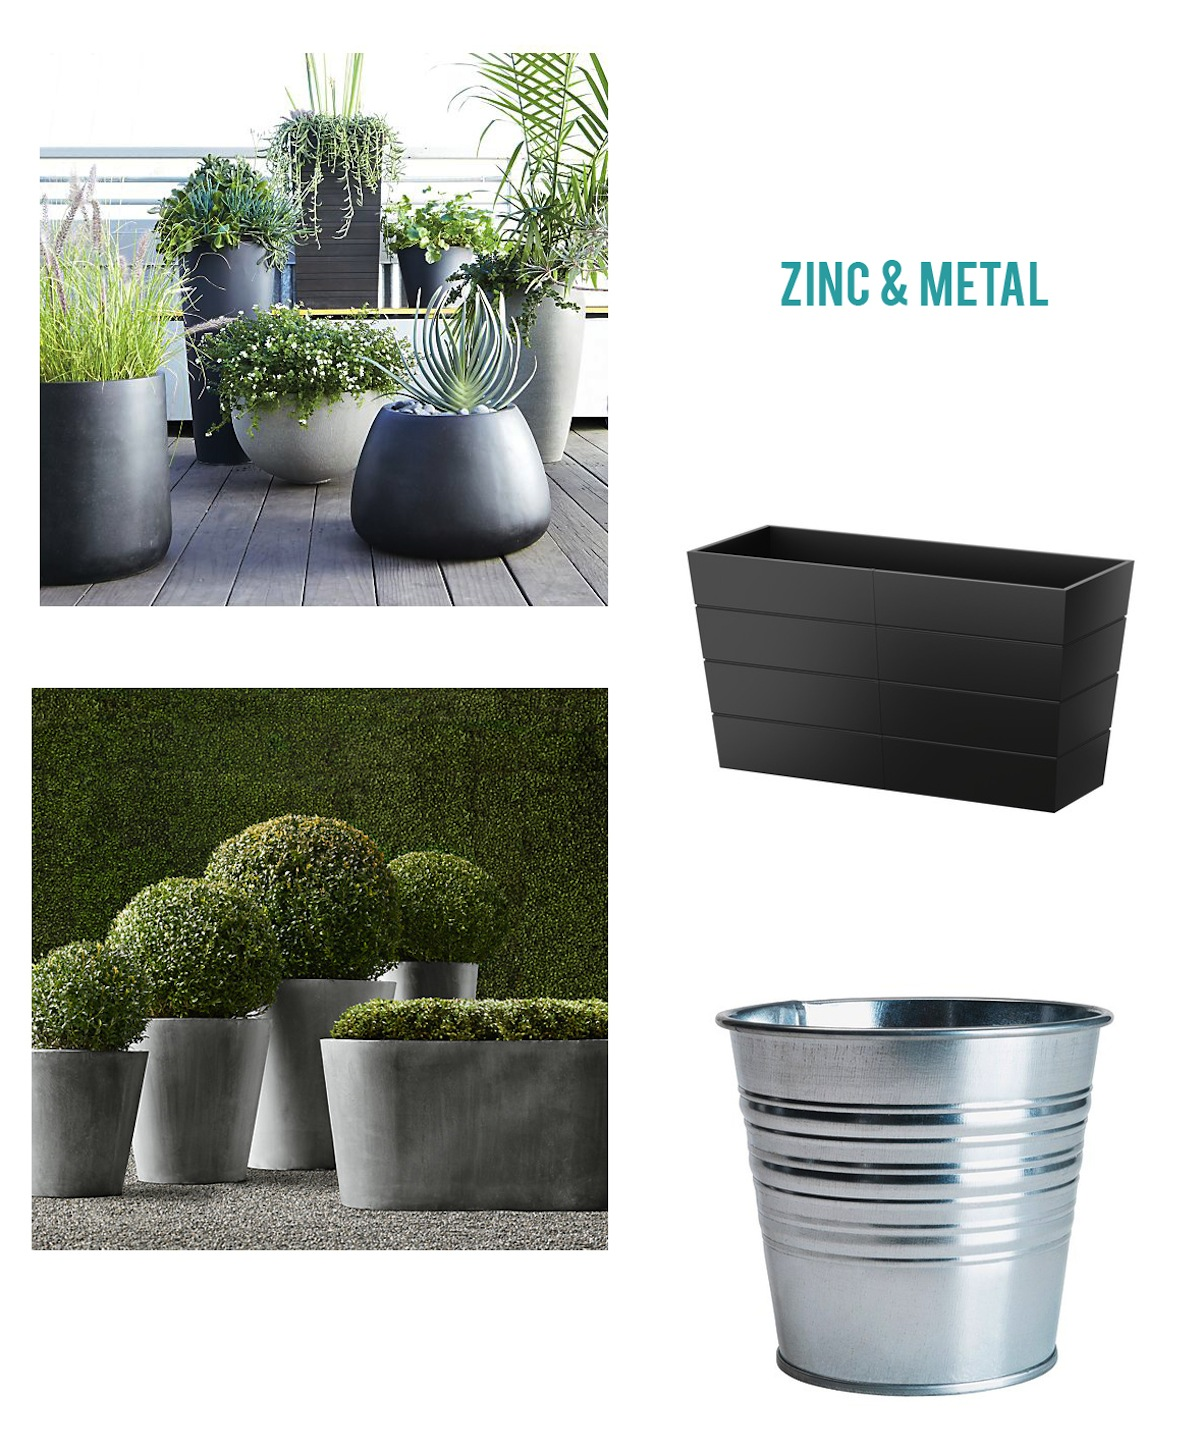 Paper Parade Co.: Garden Pots & Planters Round-Up on